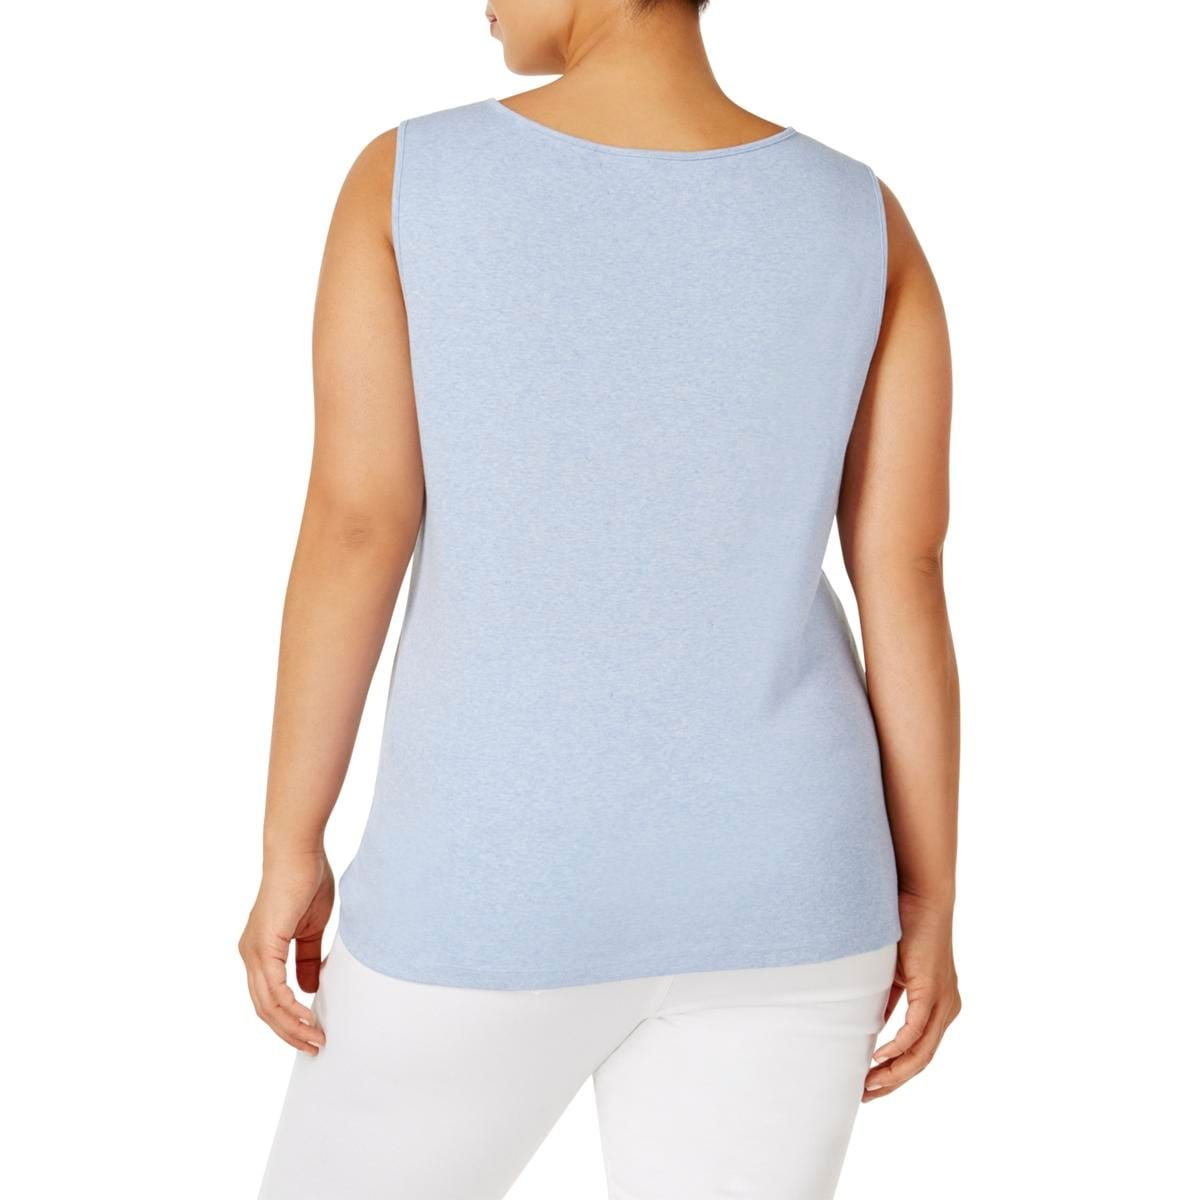 e5ff3ed918ae51 Shop Karen Scott Womens Plus Tank Top Cotton Square Neck - Free Shipping On  Orders Over  45 - Overstock - 20881398